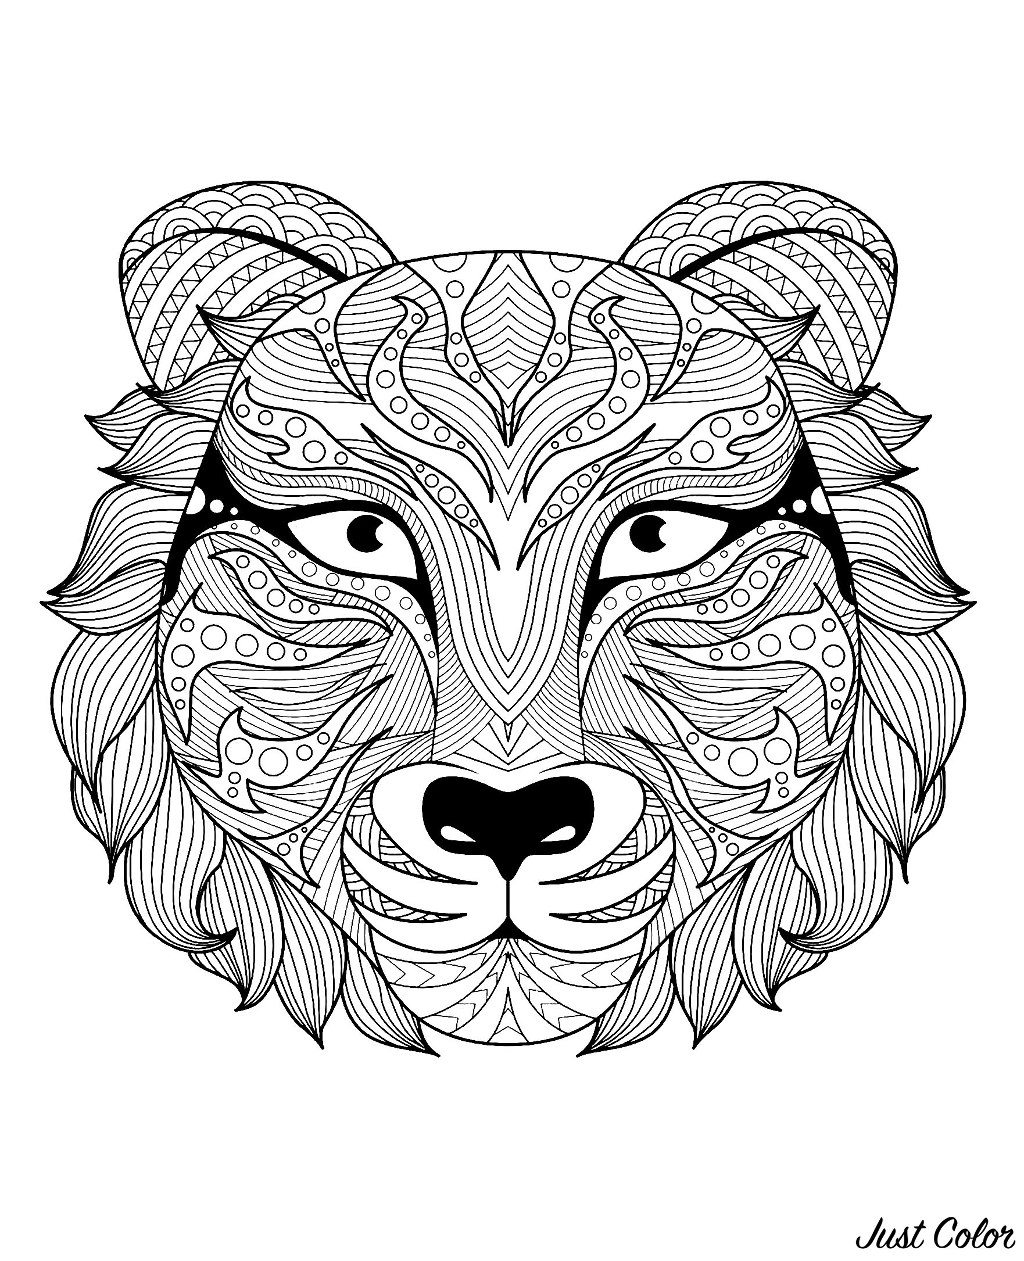 Free Tigers coloring page to print and color